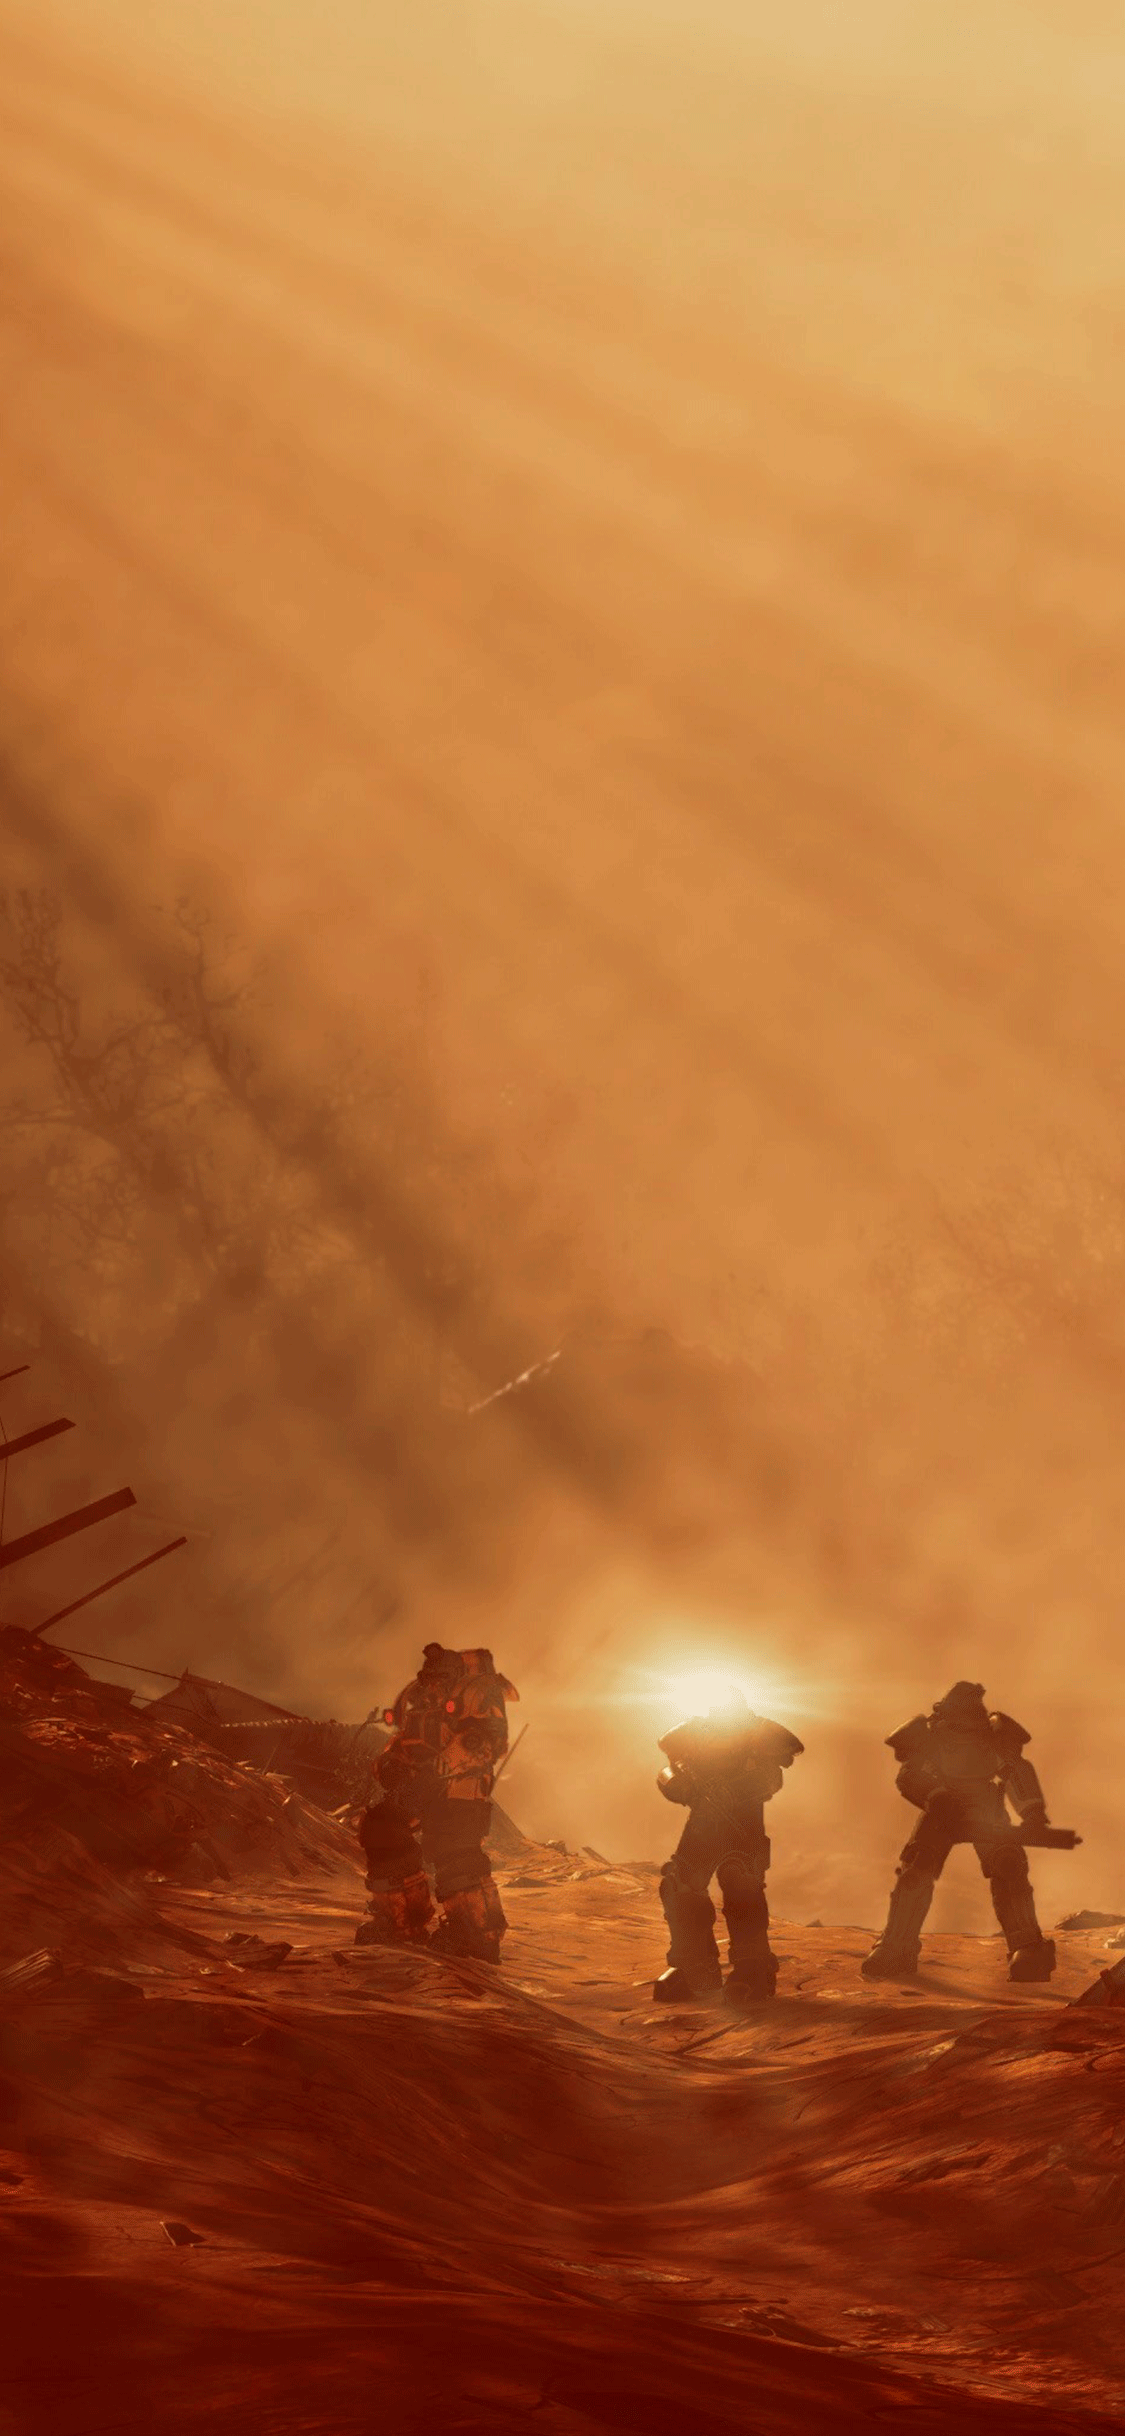 1125x2436 - Fallout iPhone 6 33